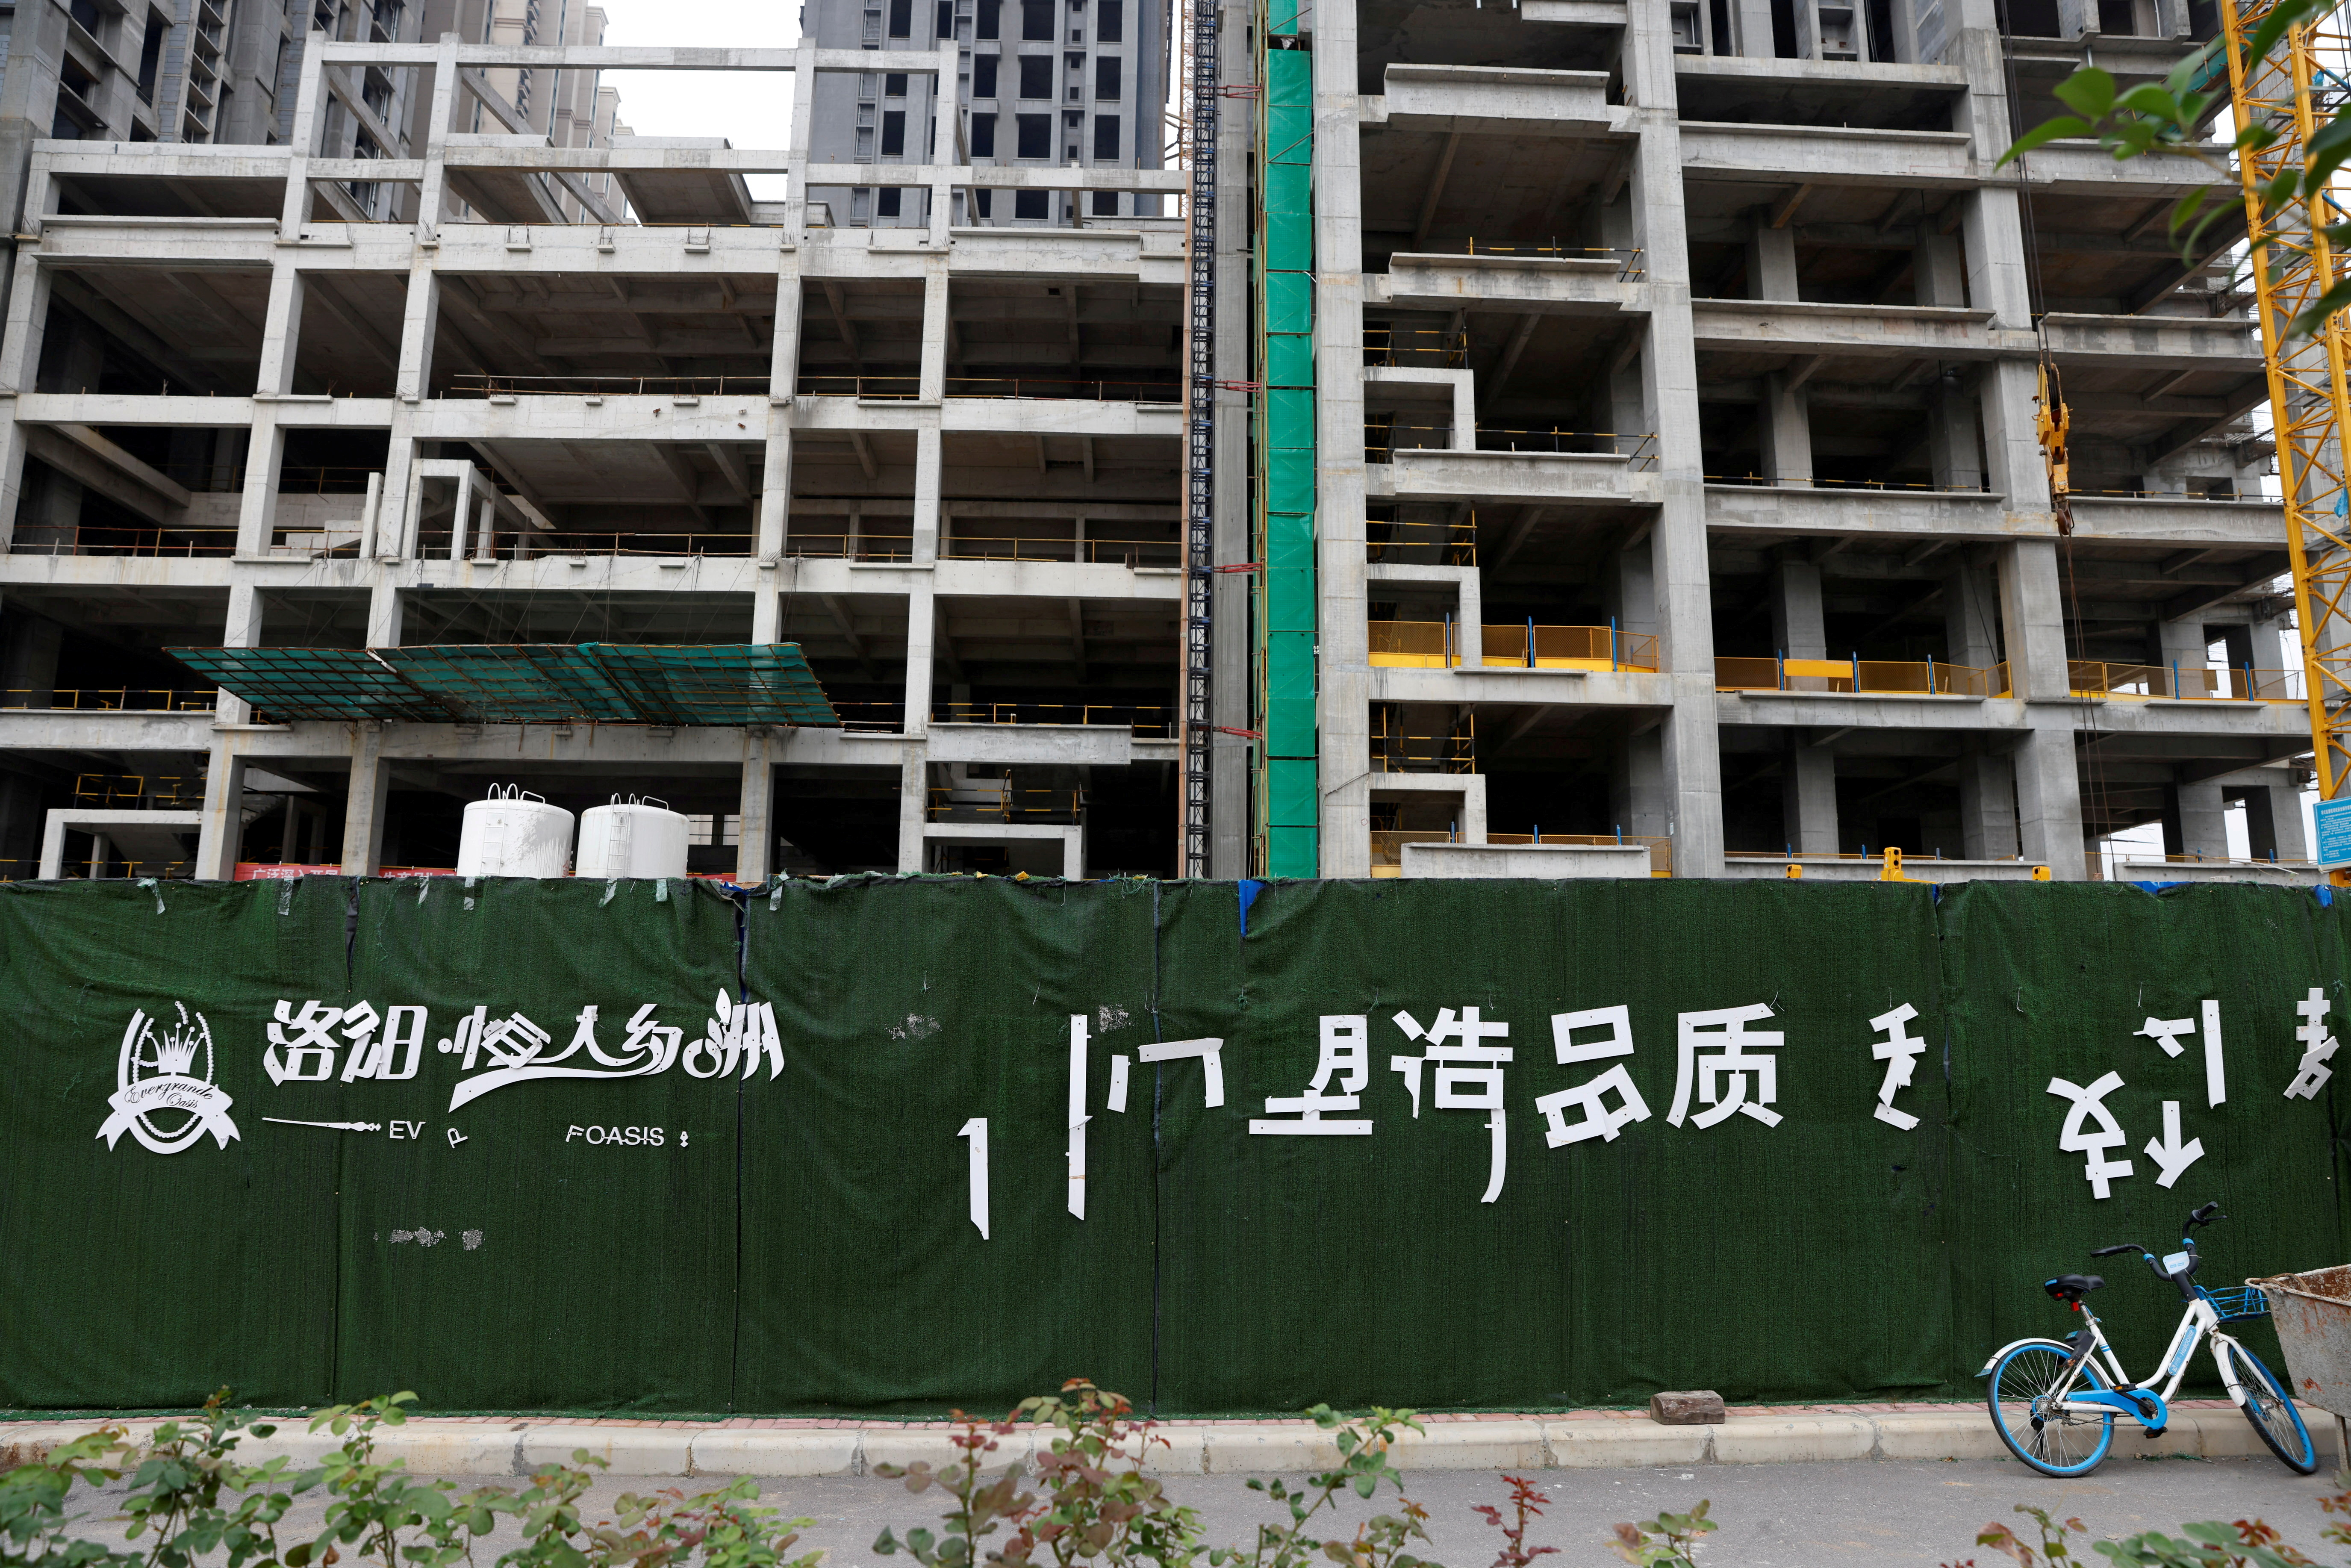 A peeling logo of the Evergrande Oasis, a housing complex developed by Evergrande Group, is seen outside the construction site where the residential buildings stand unfinished, in Luoyang, China September 16, 2021. Picture taken September 16, 2021. REUTERS/Carlos Garcia Rawlins/File Photo